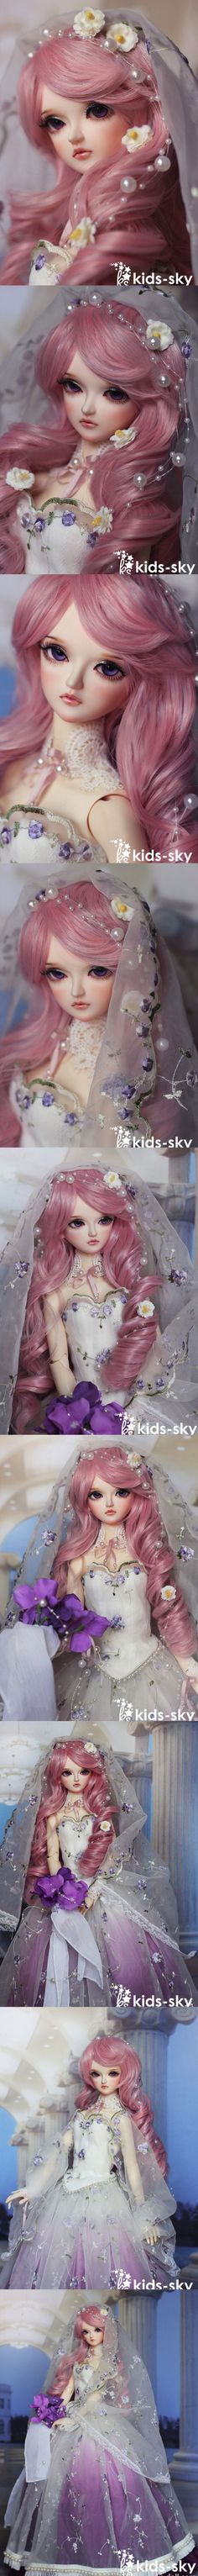 BJD Amethyst 58cm Girl Ball-jointed doll_SD size_Kids-Sky_DOLL_Ball Jointed Dolls (BJD) company-Legenddoll